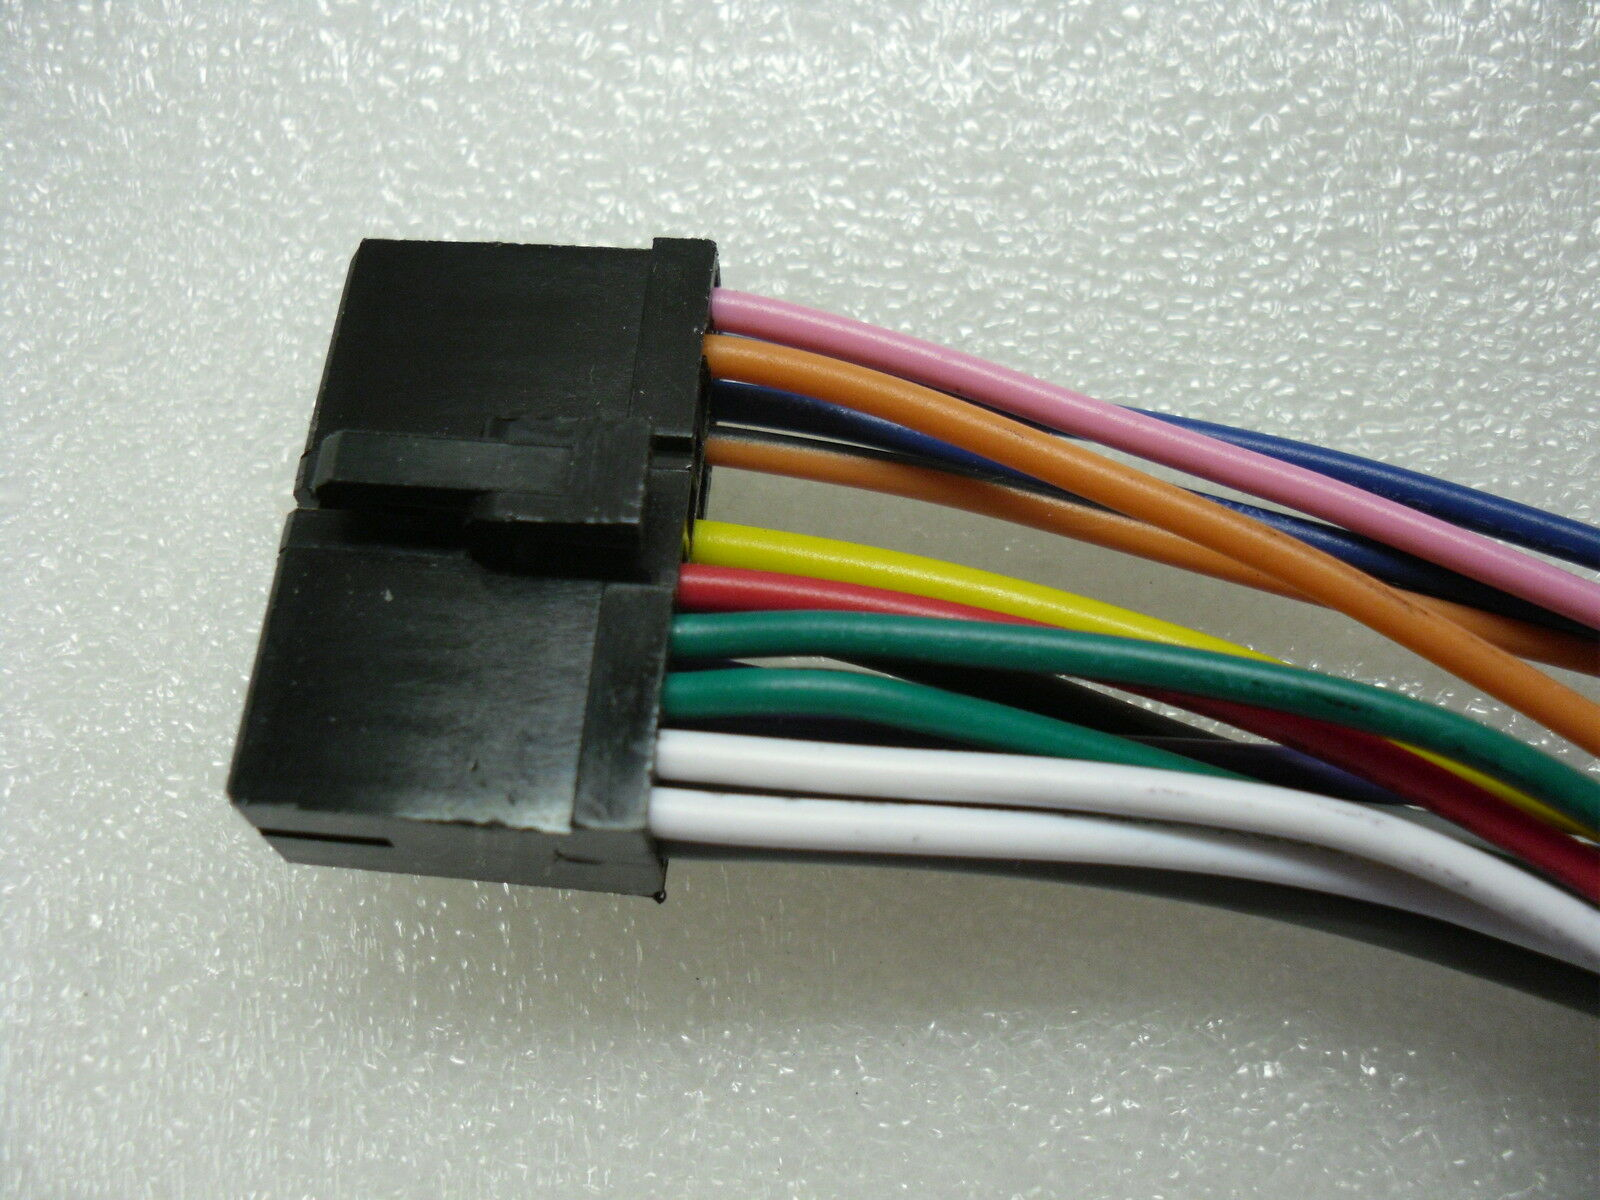 Dual Cd Player Wiring Harness Xdm260 Stereo Xd1228 Diagram Color Dualxdm260car Pin Experts Of On